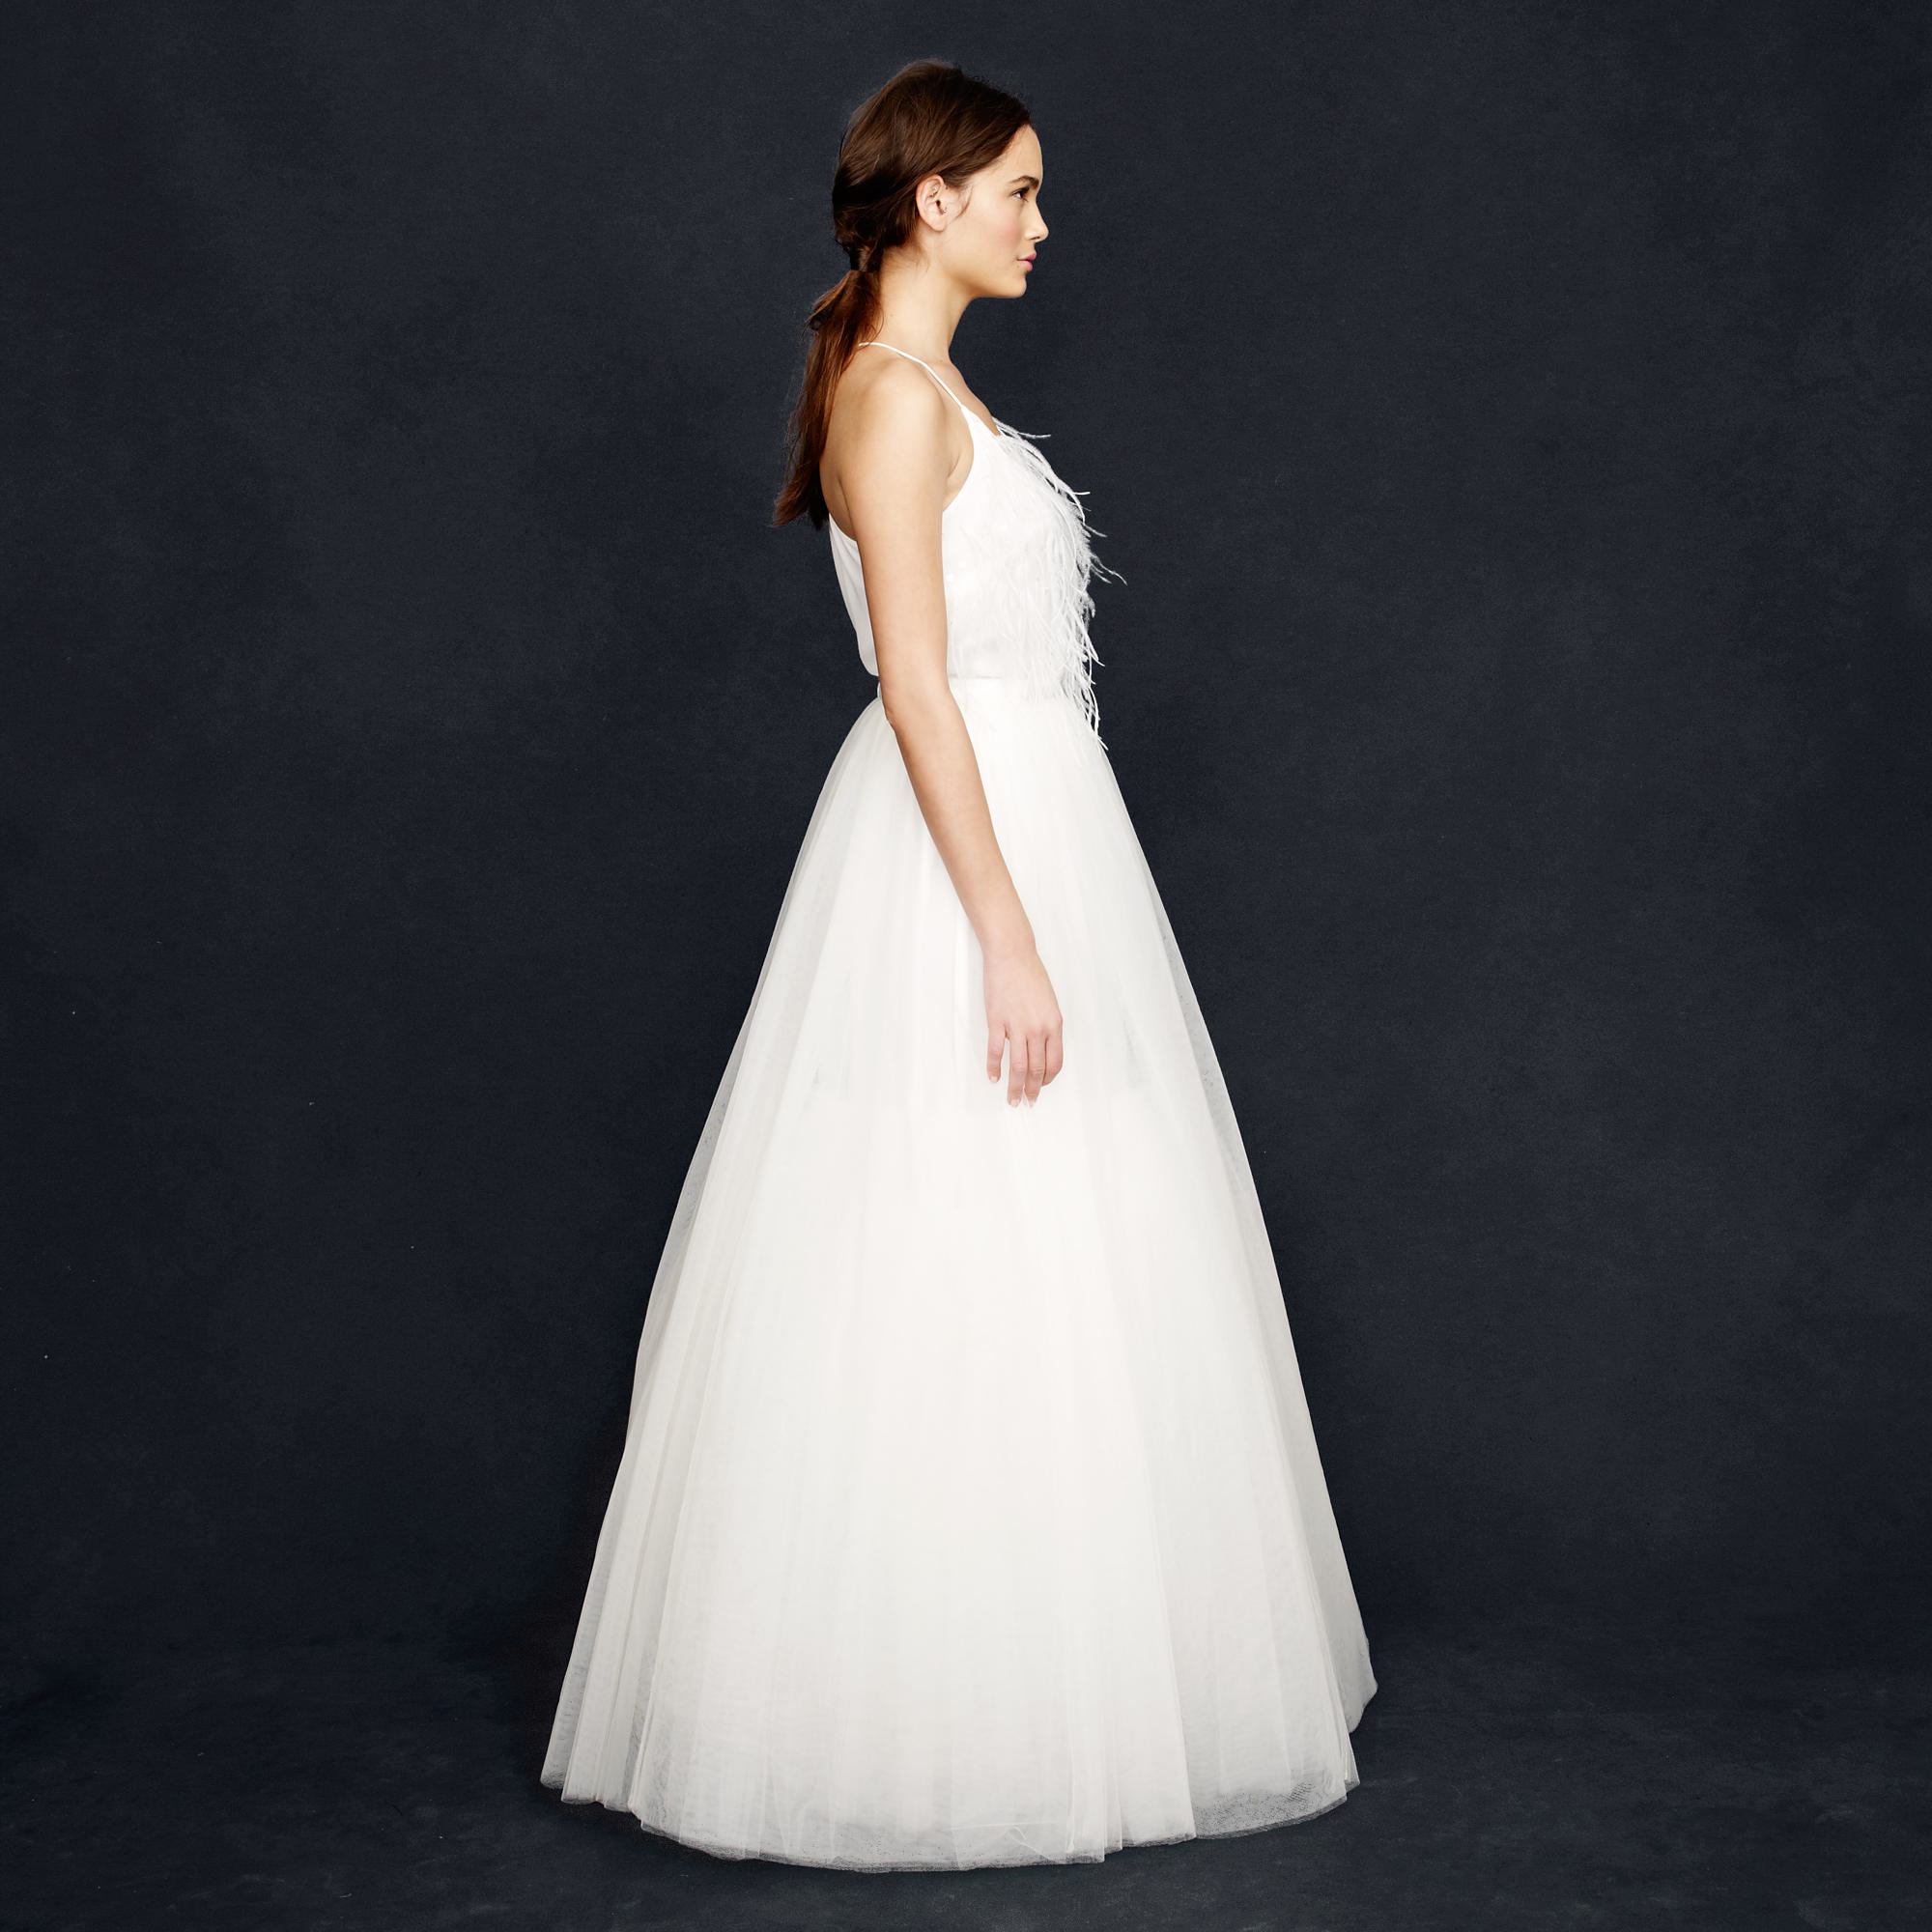 J.Crew Collection Snowdrop Tulle Ball Gown Skirt in Ivory (White)